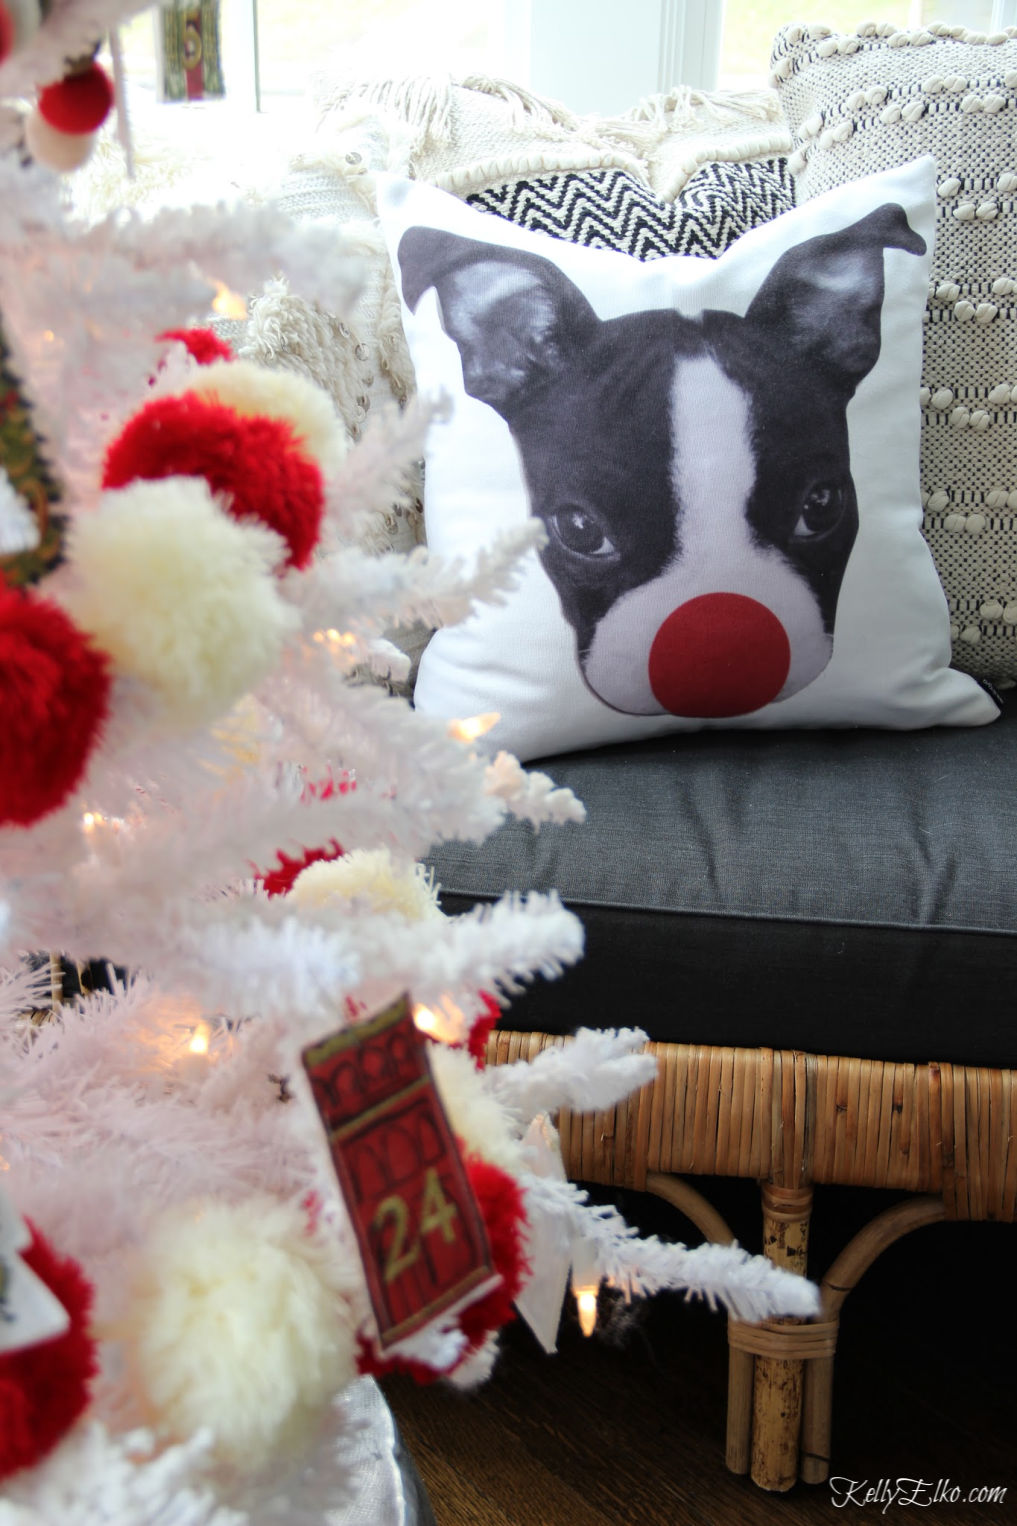 How adorable is this Christmas pillow of a Boston Terrier with a big red Rudolph nose! kellyelko.com #christmasdecor #christmaspillow #christmasdecorations #pillows #bostonterrier #bostonterrierdecor #society6pillow #kellyelko